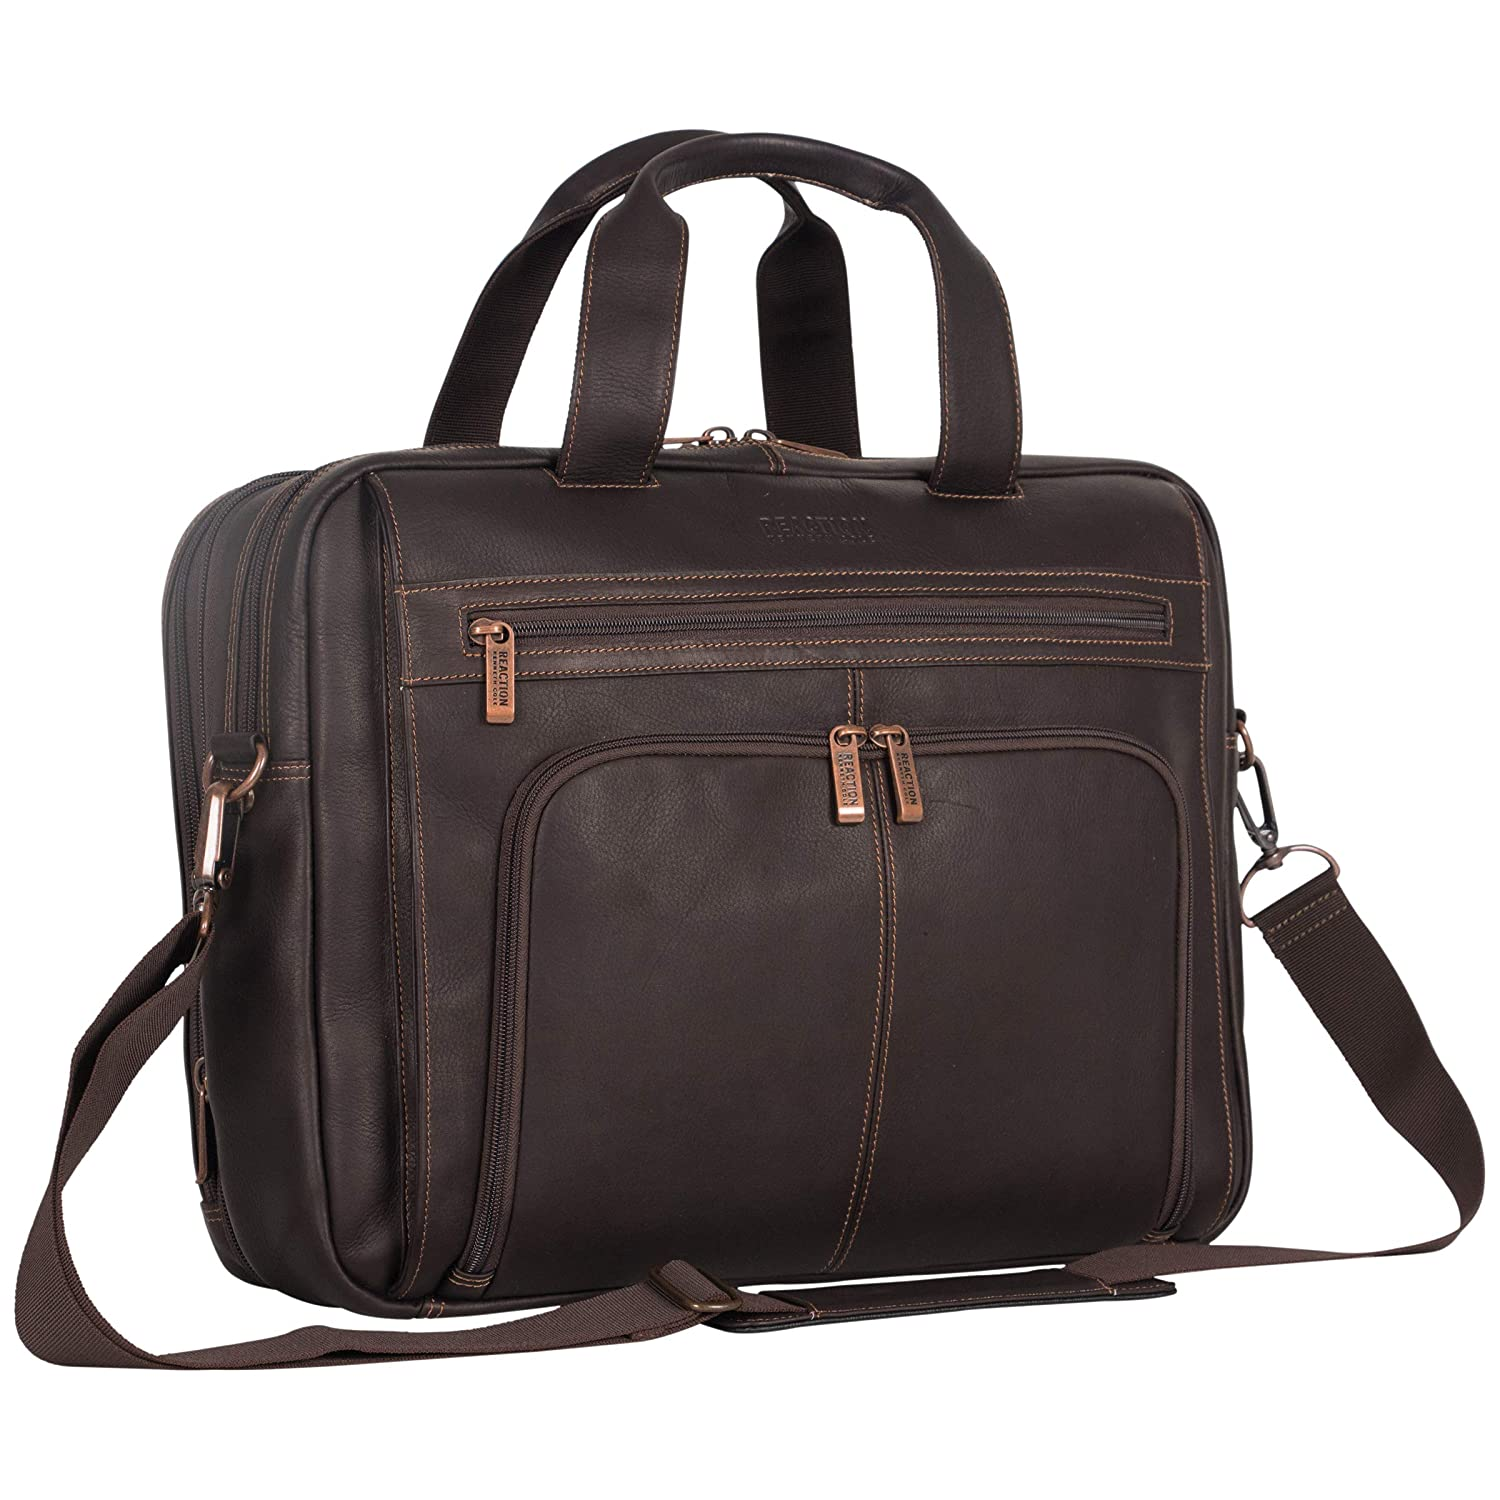 Kenneth Cole Reaction Colombian Leather Dual Compartment Expandable 15.6 Laptop Portfolio, Cognac Heritage-Kenneth Cole Luggage 524464